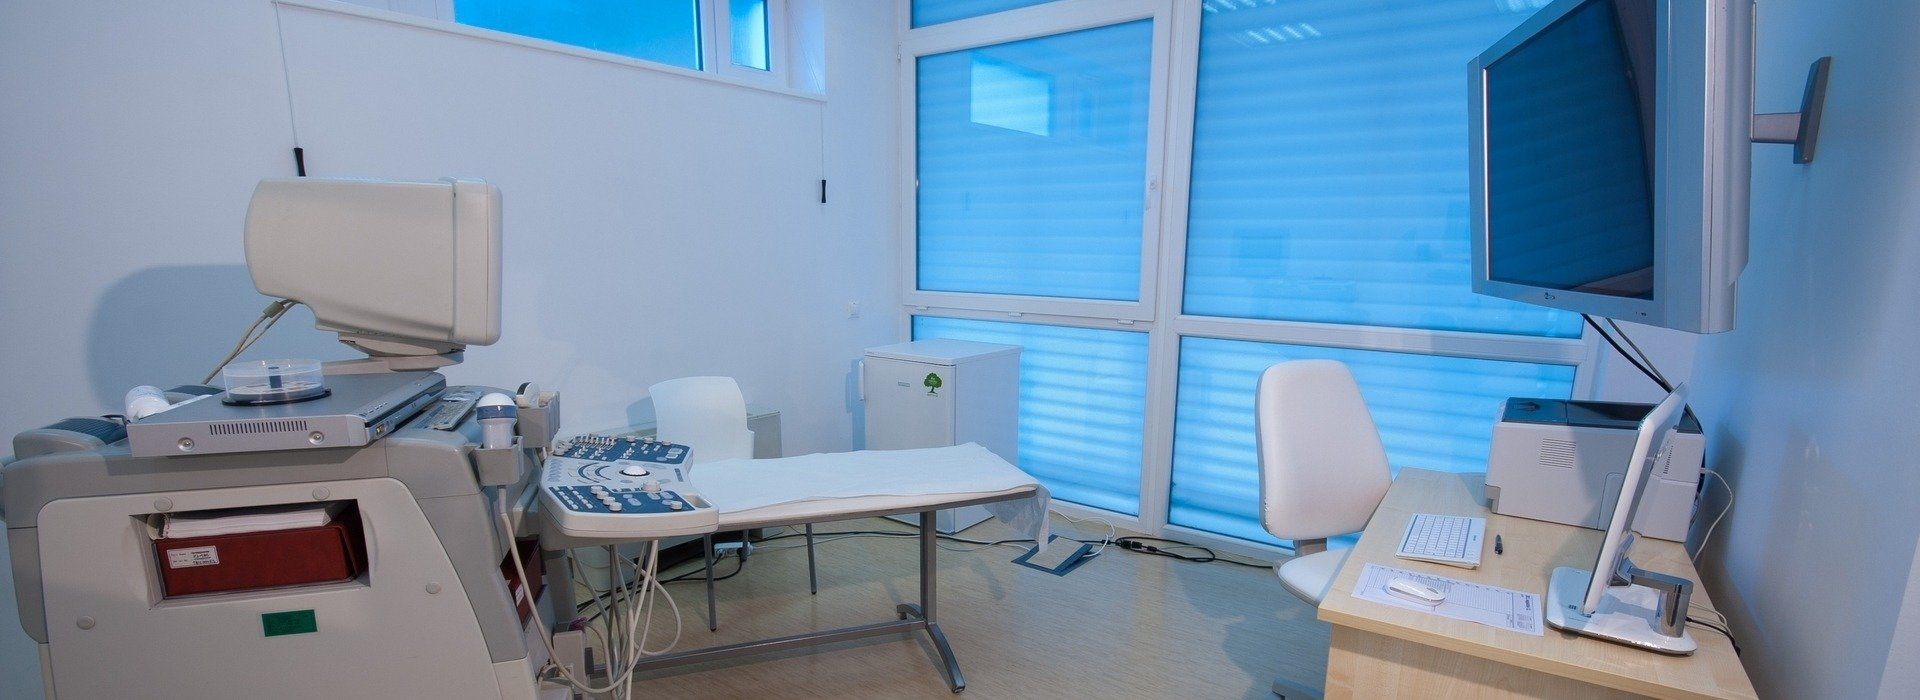 Private clinic services in Budapest – Private clinics in Budapest